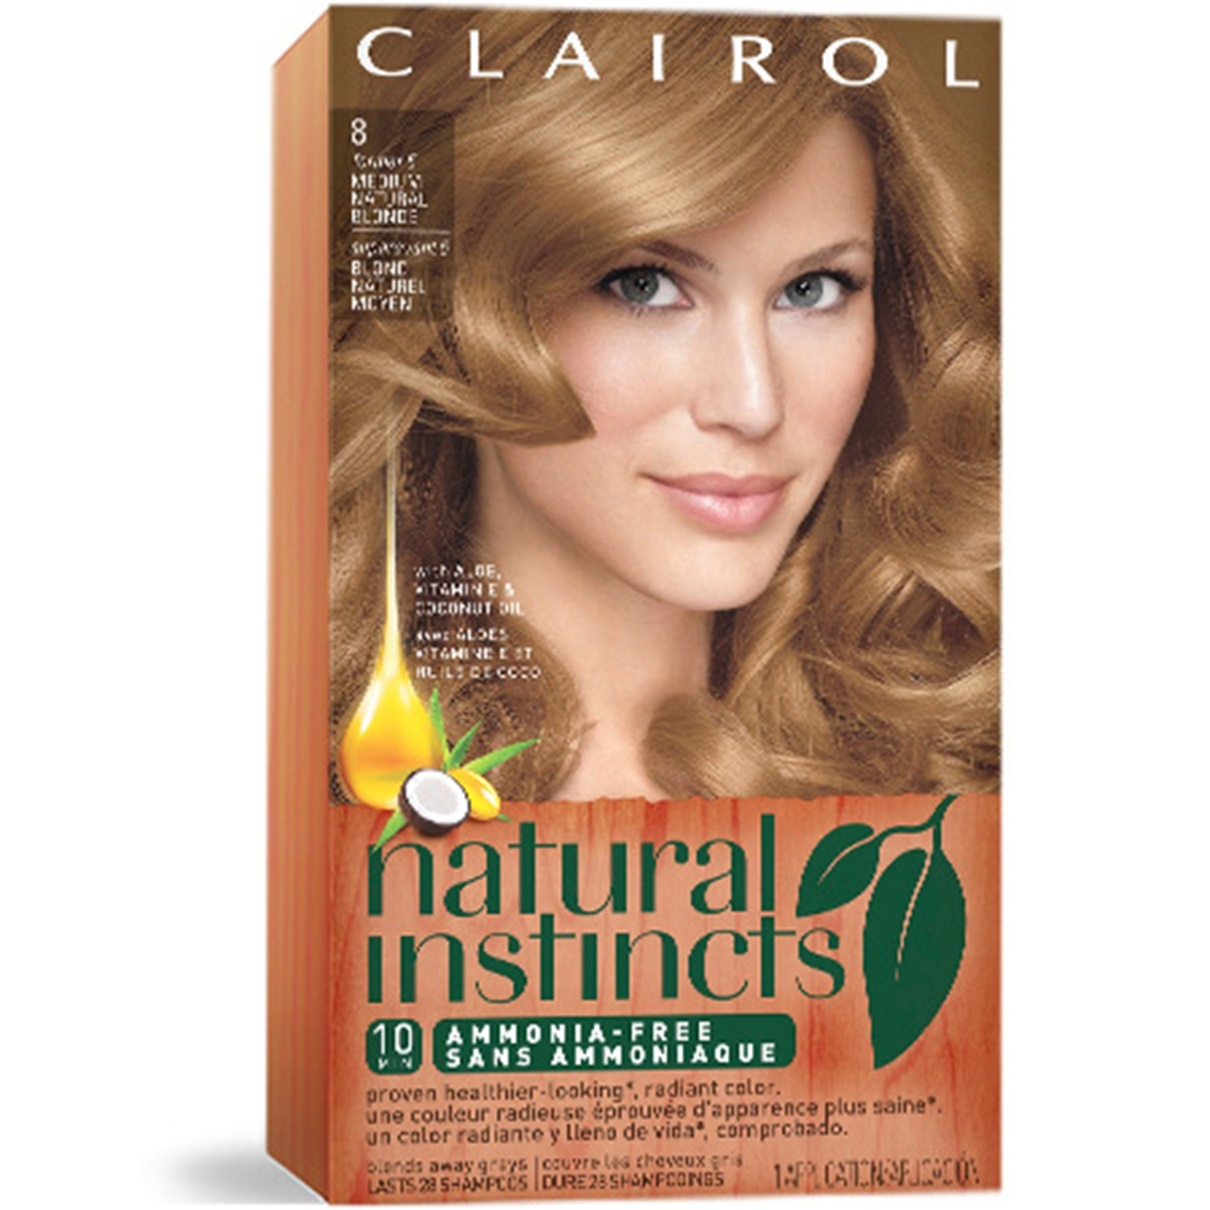 Buy One, Get One Free Clairol Hair Color Printable Coupon - Money - Free Hair Dye Coupons Printable